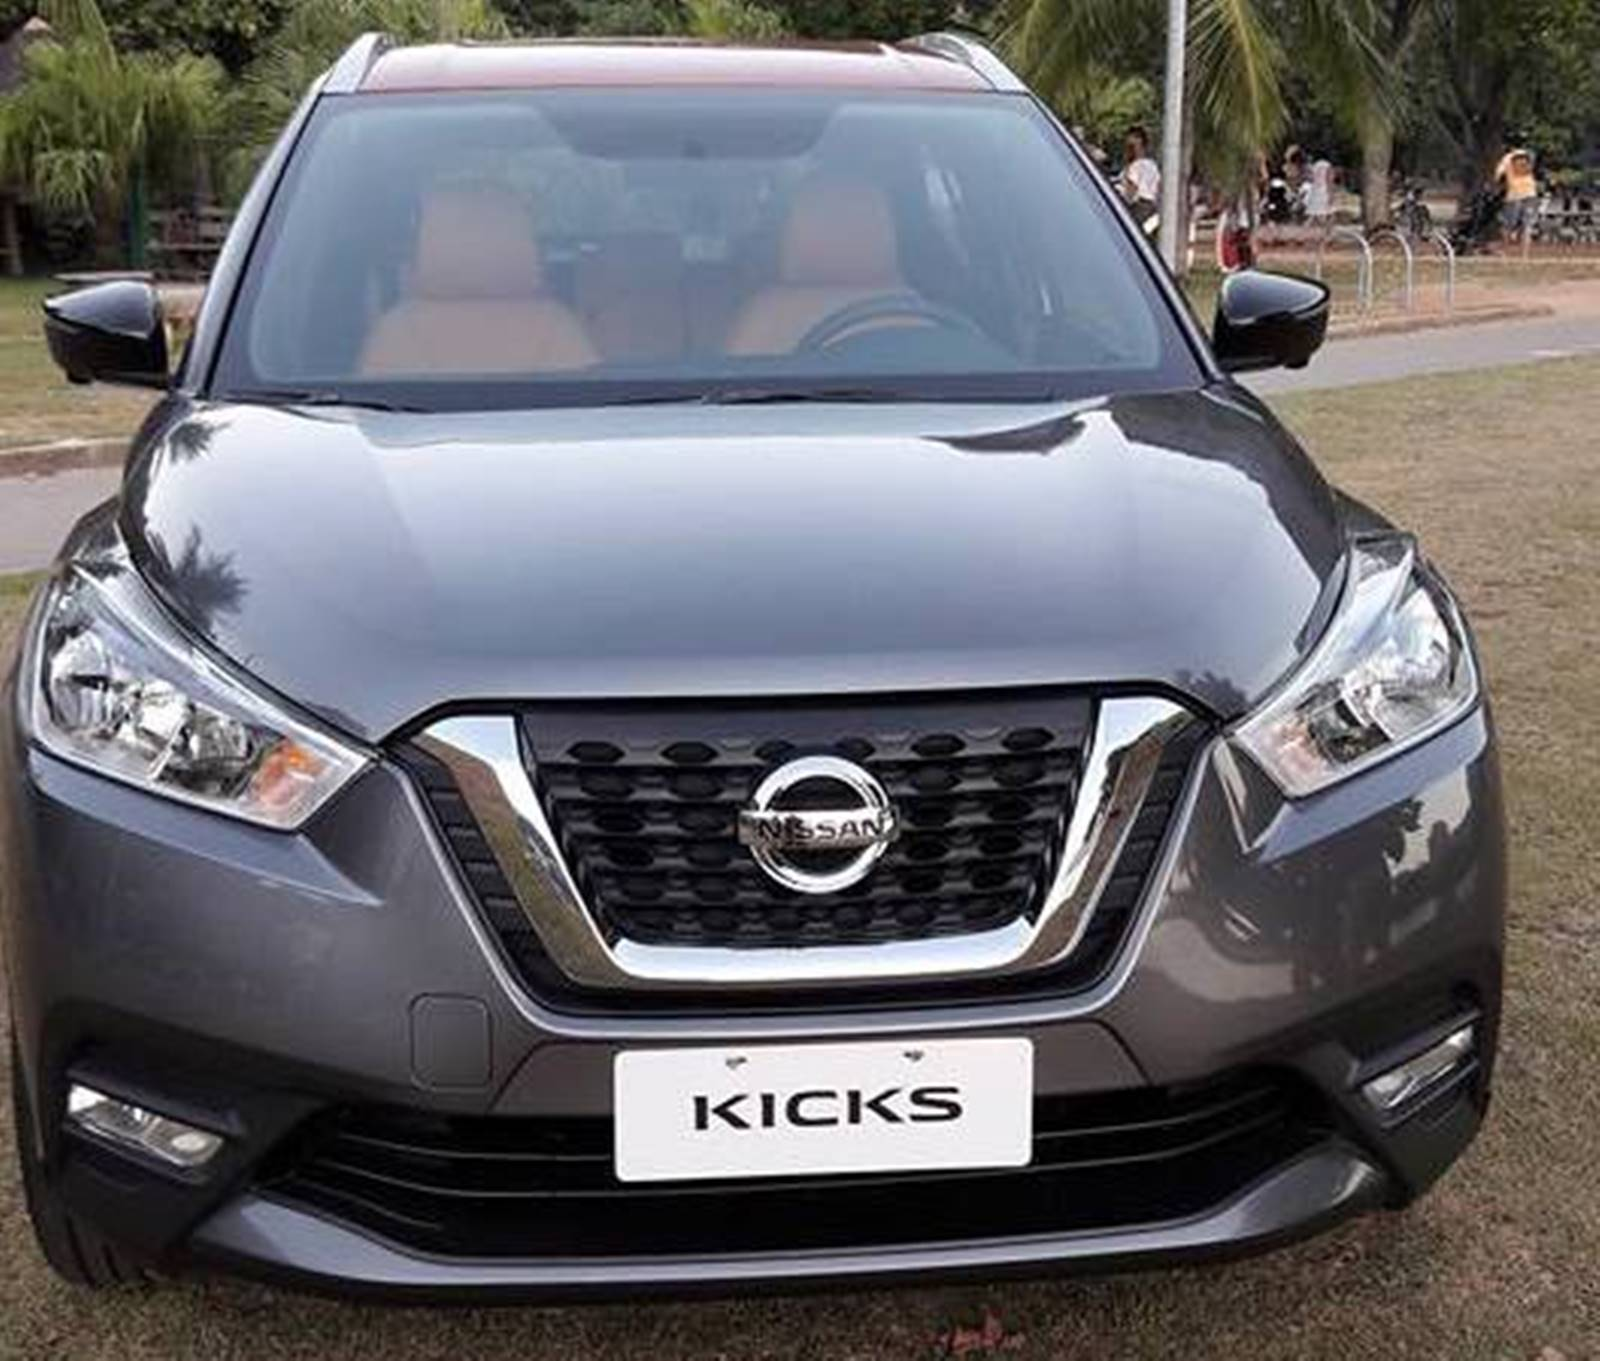 2016 nissan kicks suv hd wallpaper types cars. Black Bedroom Furniture Sets. Home Design Ideas